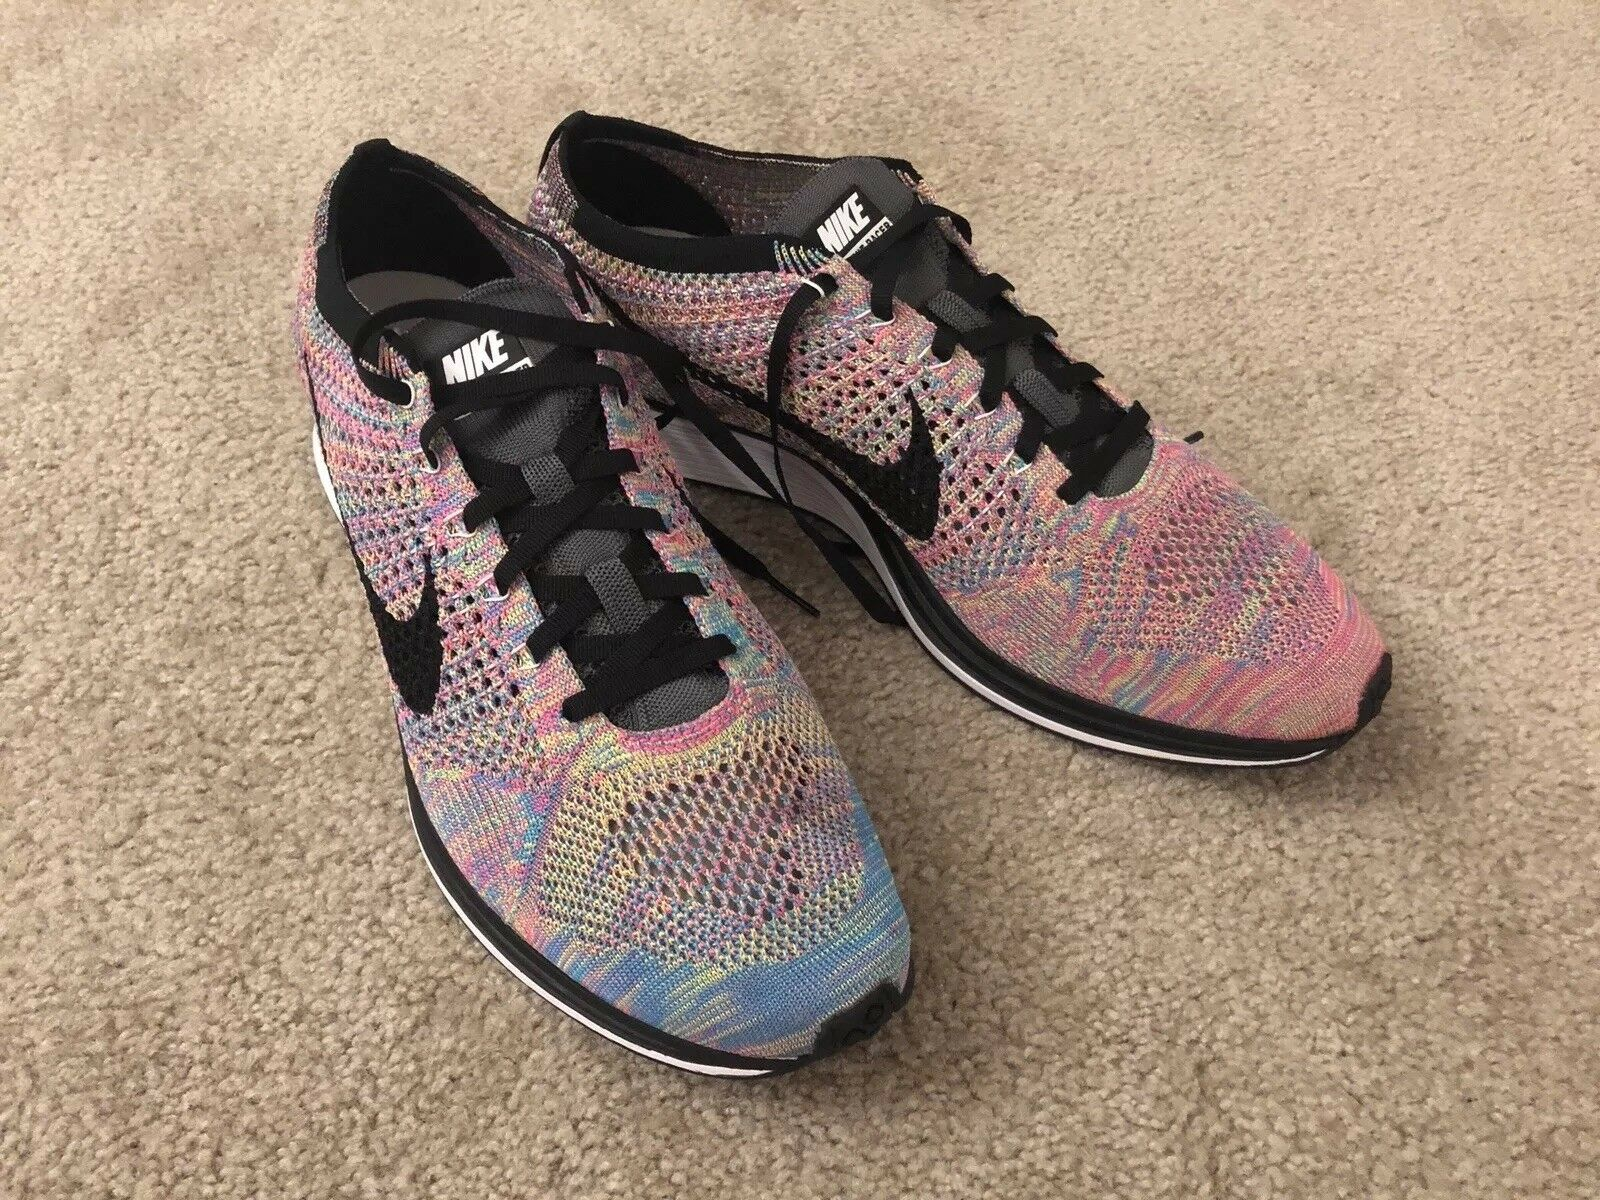 Nike Flyknit Racer 3.0 Multi color size 13. New. No box.